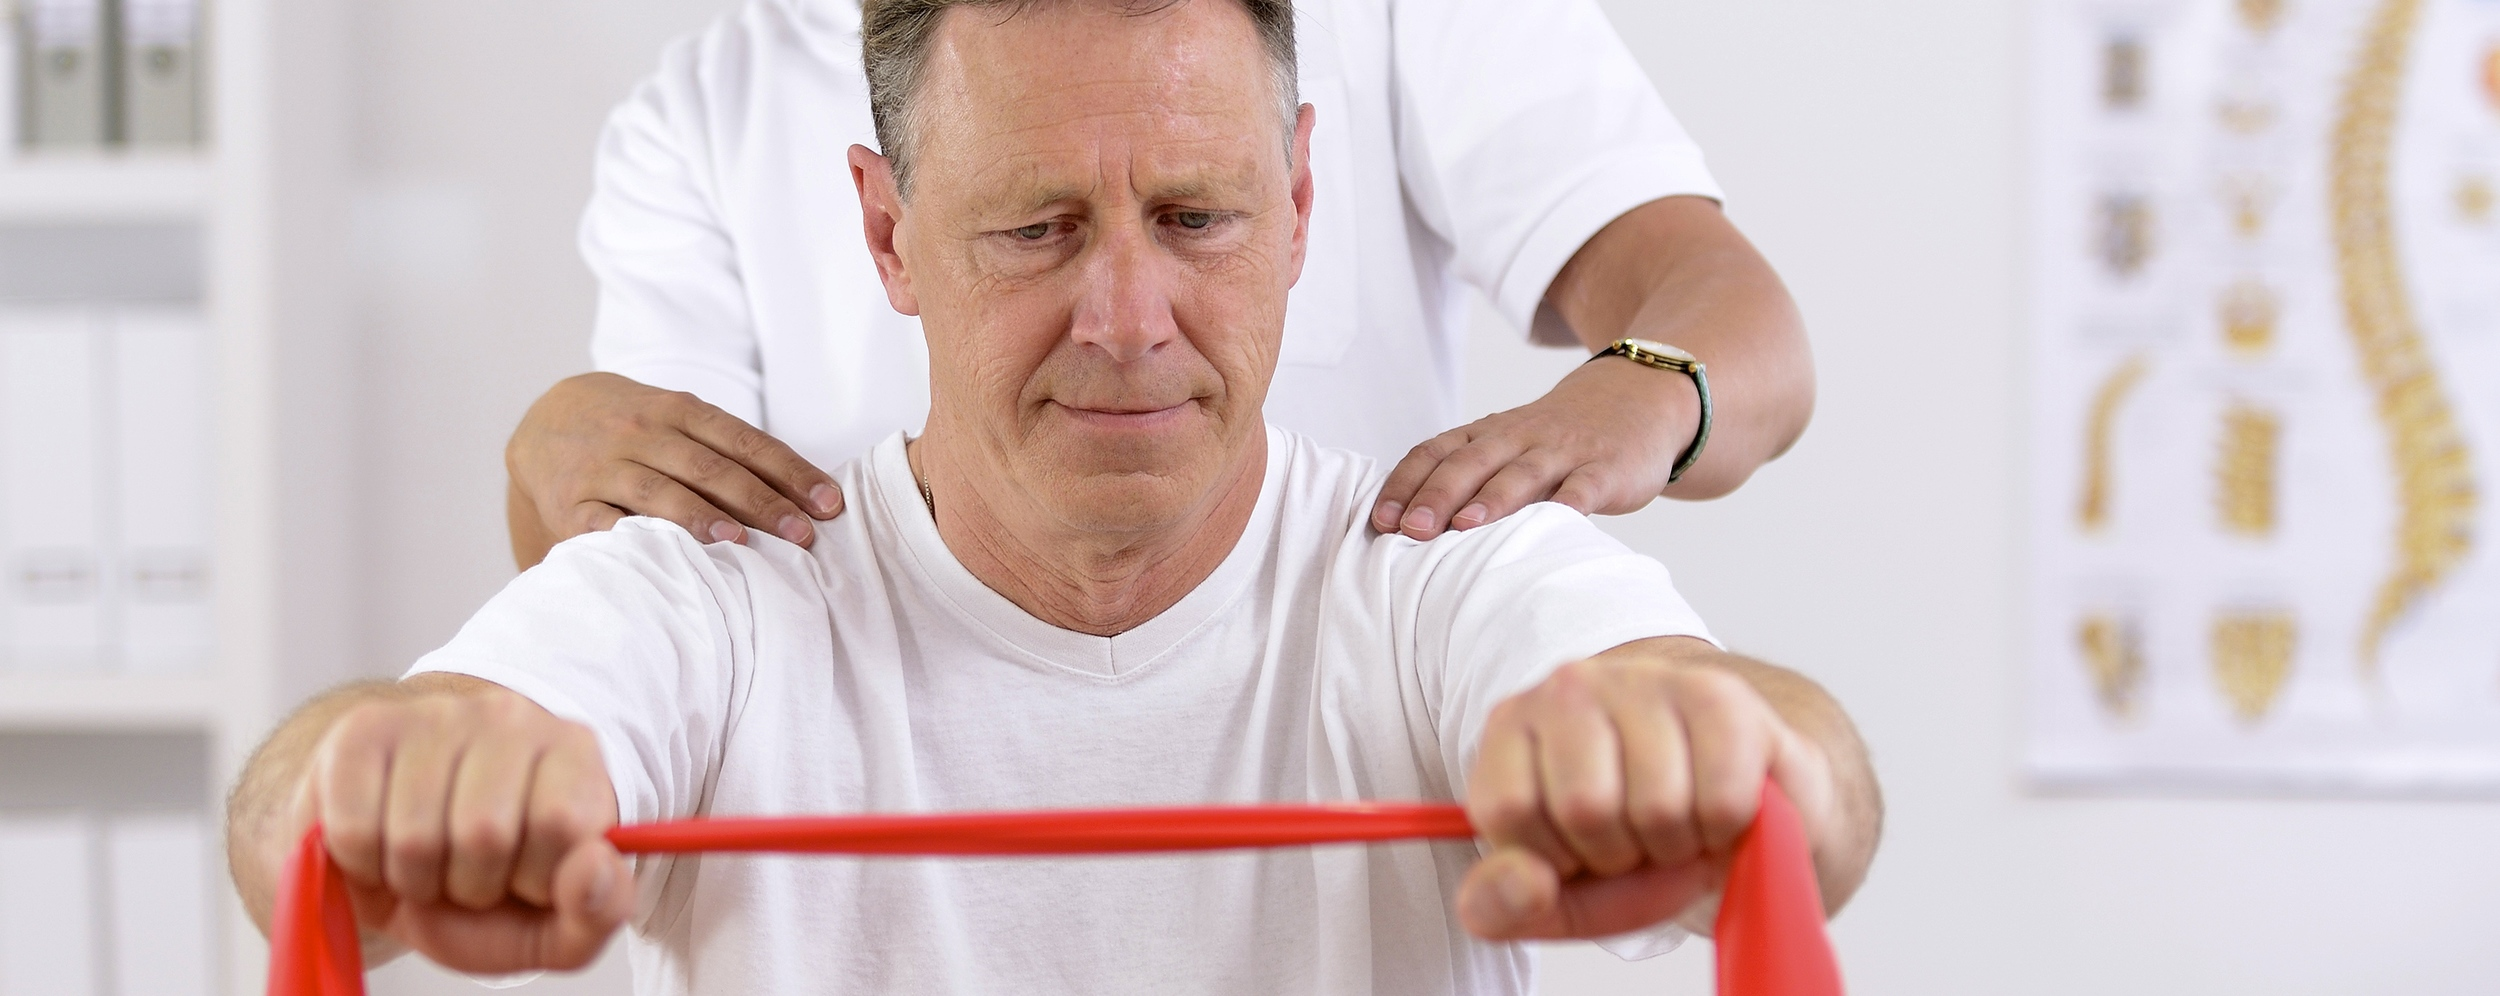 WE ALSO ENCOURAGE OUR CLIENTS TO ADDRESS REHABILITATION NEEDS AND INJURY-P  REVENTION STRATEGIES IN CONJUNCTION WITH  HEALTH PRACTITIONERS.  we never compromise your health. If we don't have the answer, we will refer you to a professional better qualified.